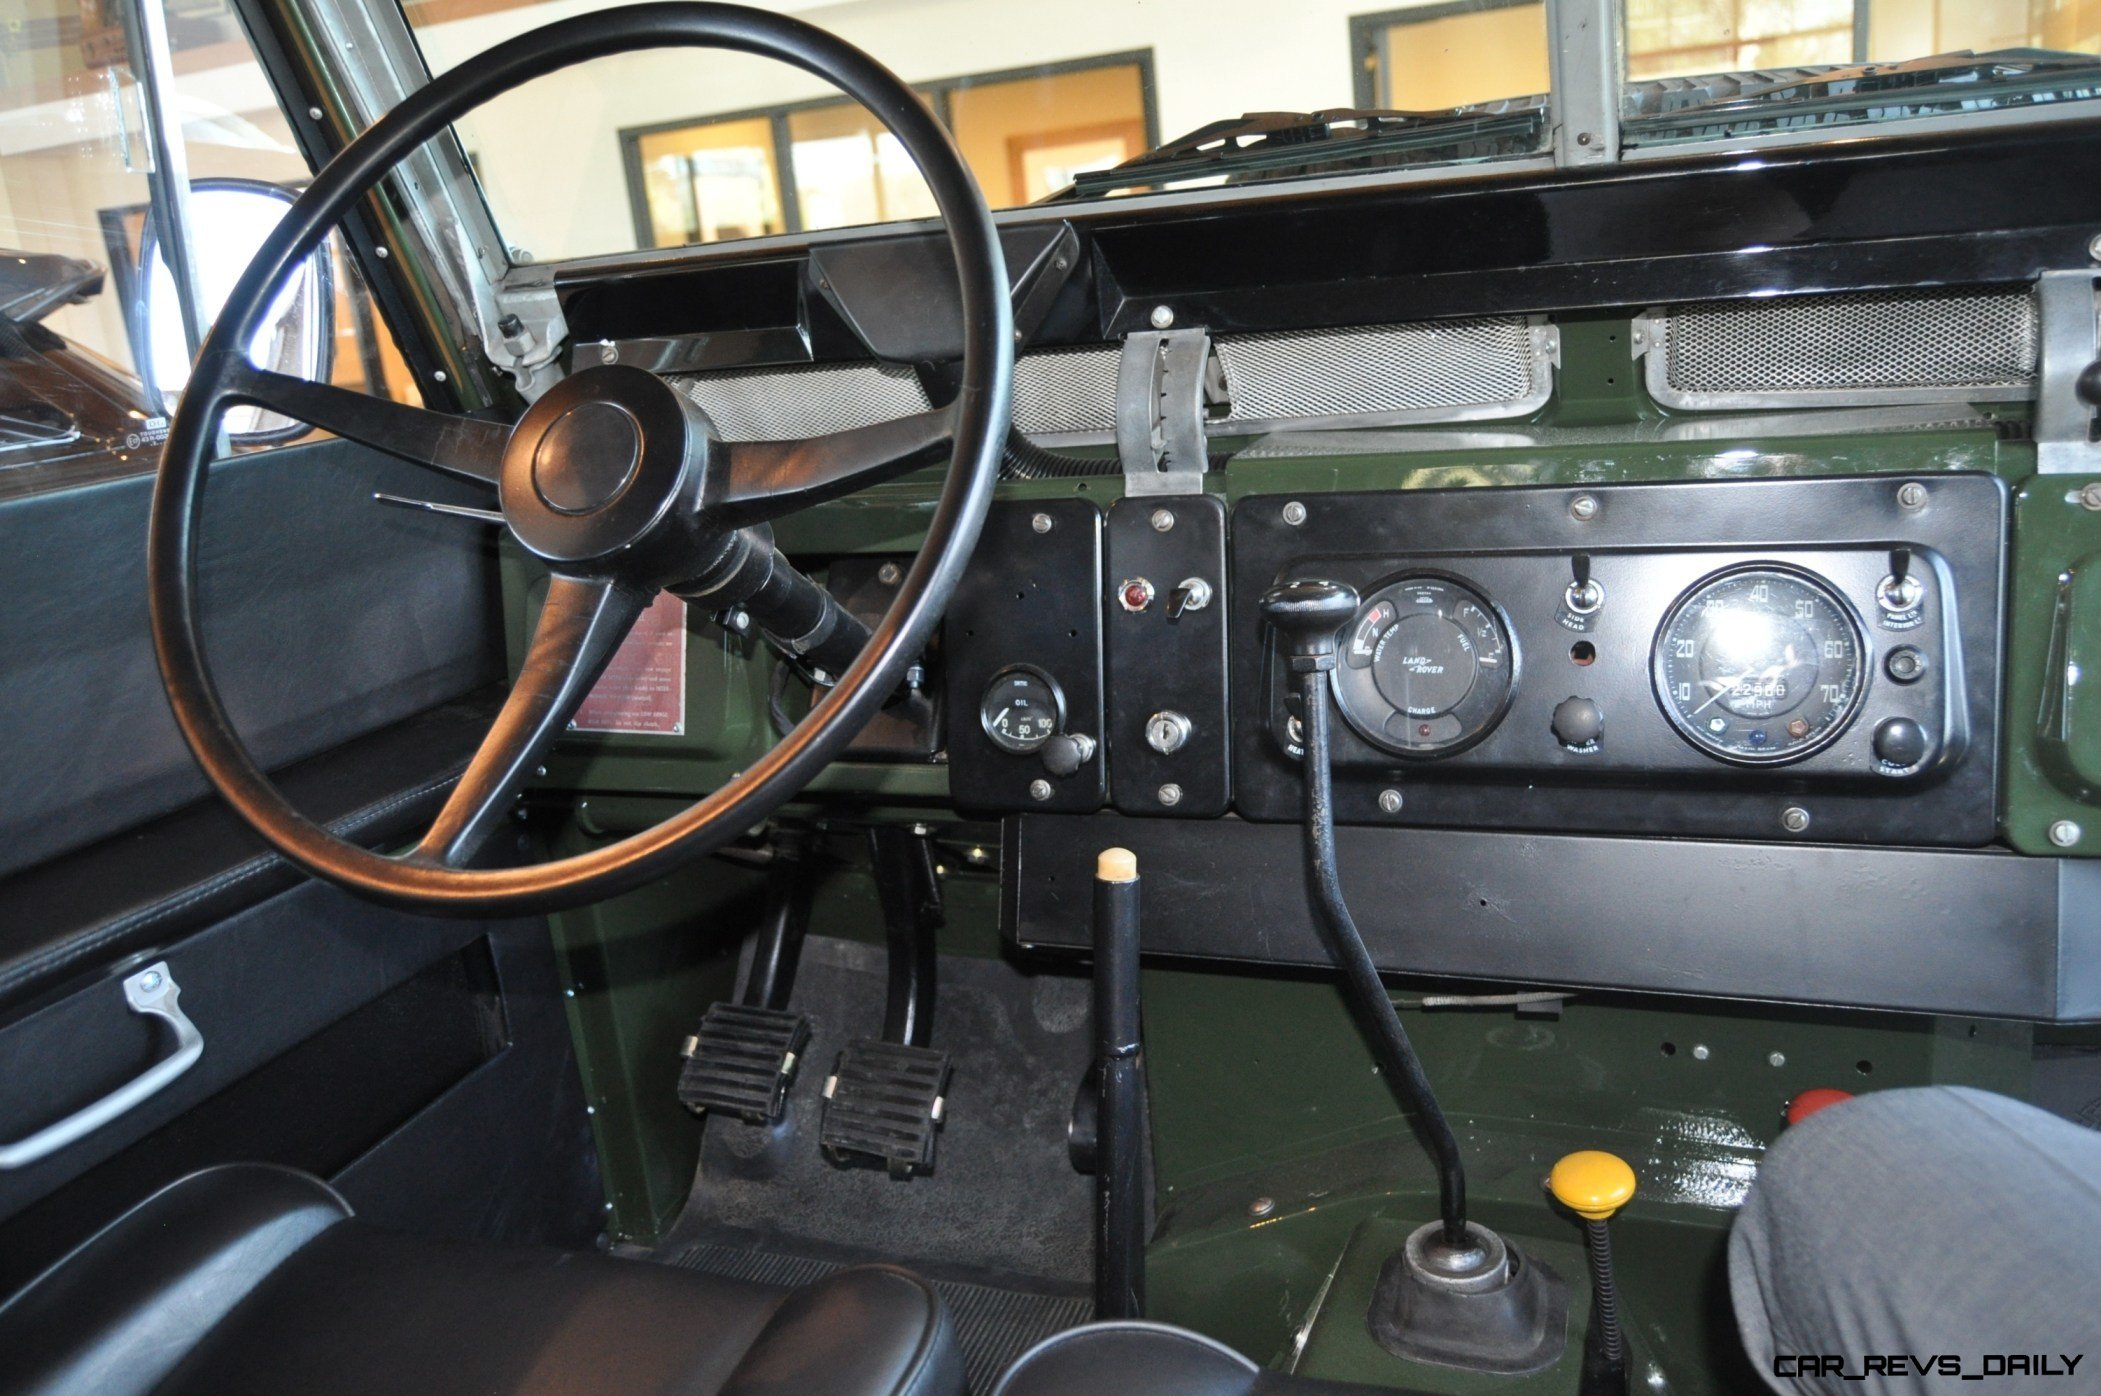 Land Rover For Sale Near Me >> Video Walk-around and Photos - Near-Mint 1969 Land Rover ...